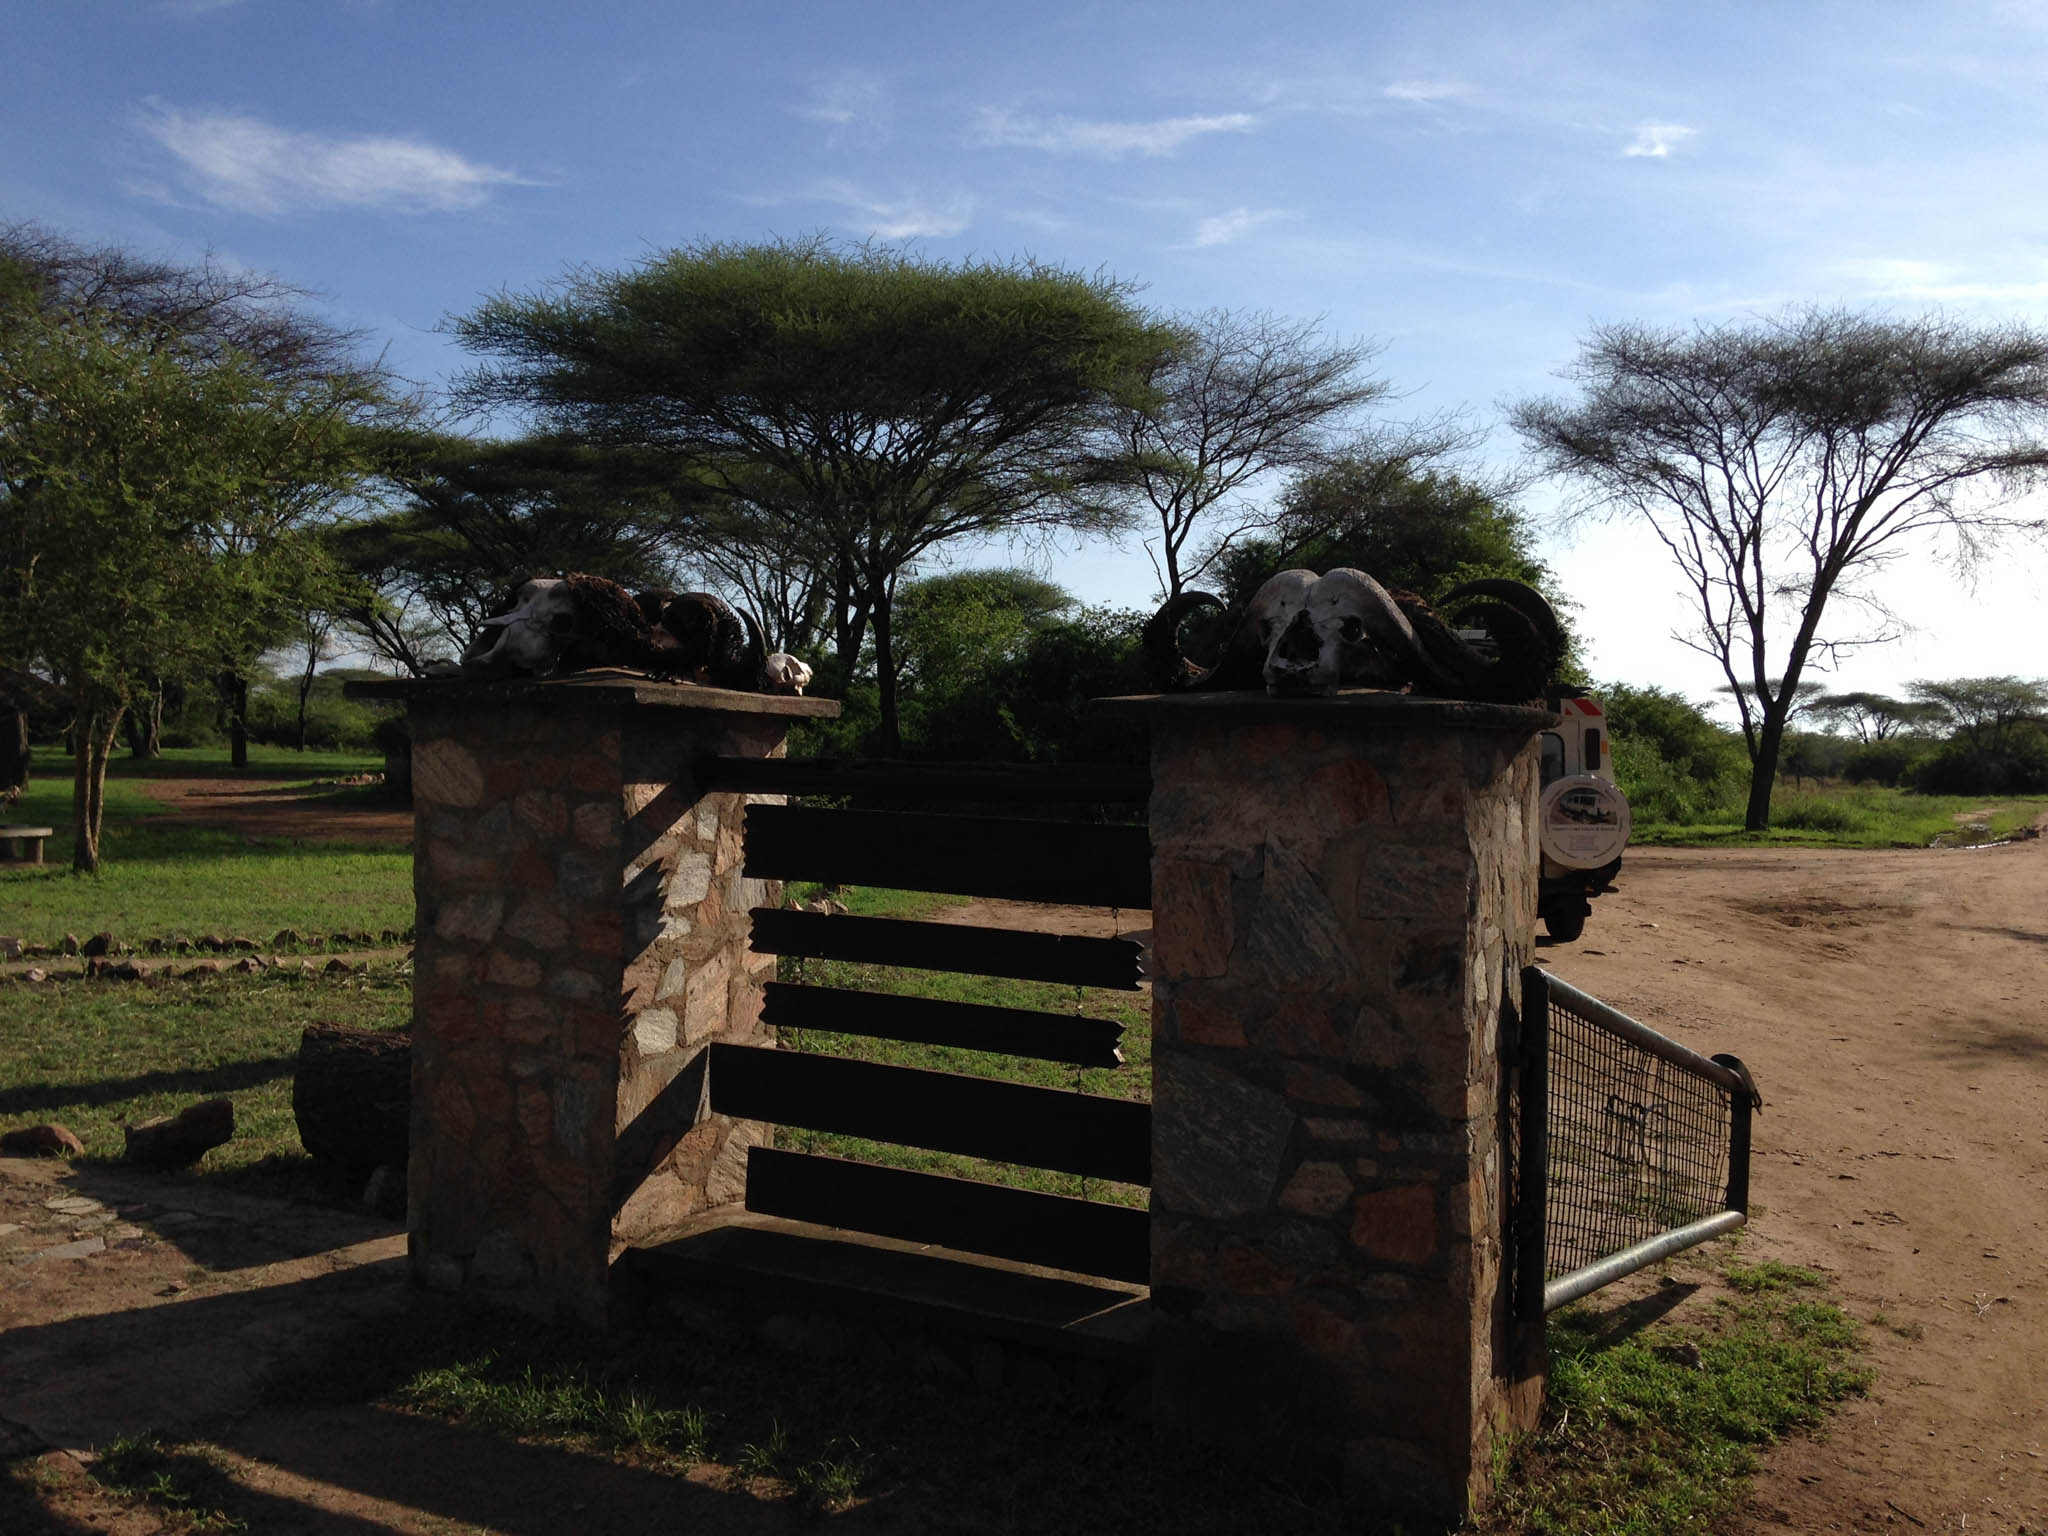 At the exit gate of the Serengeti